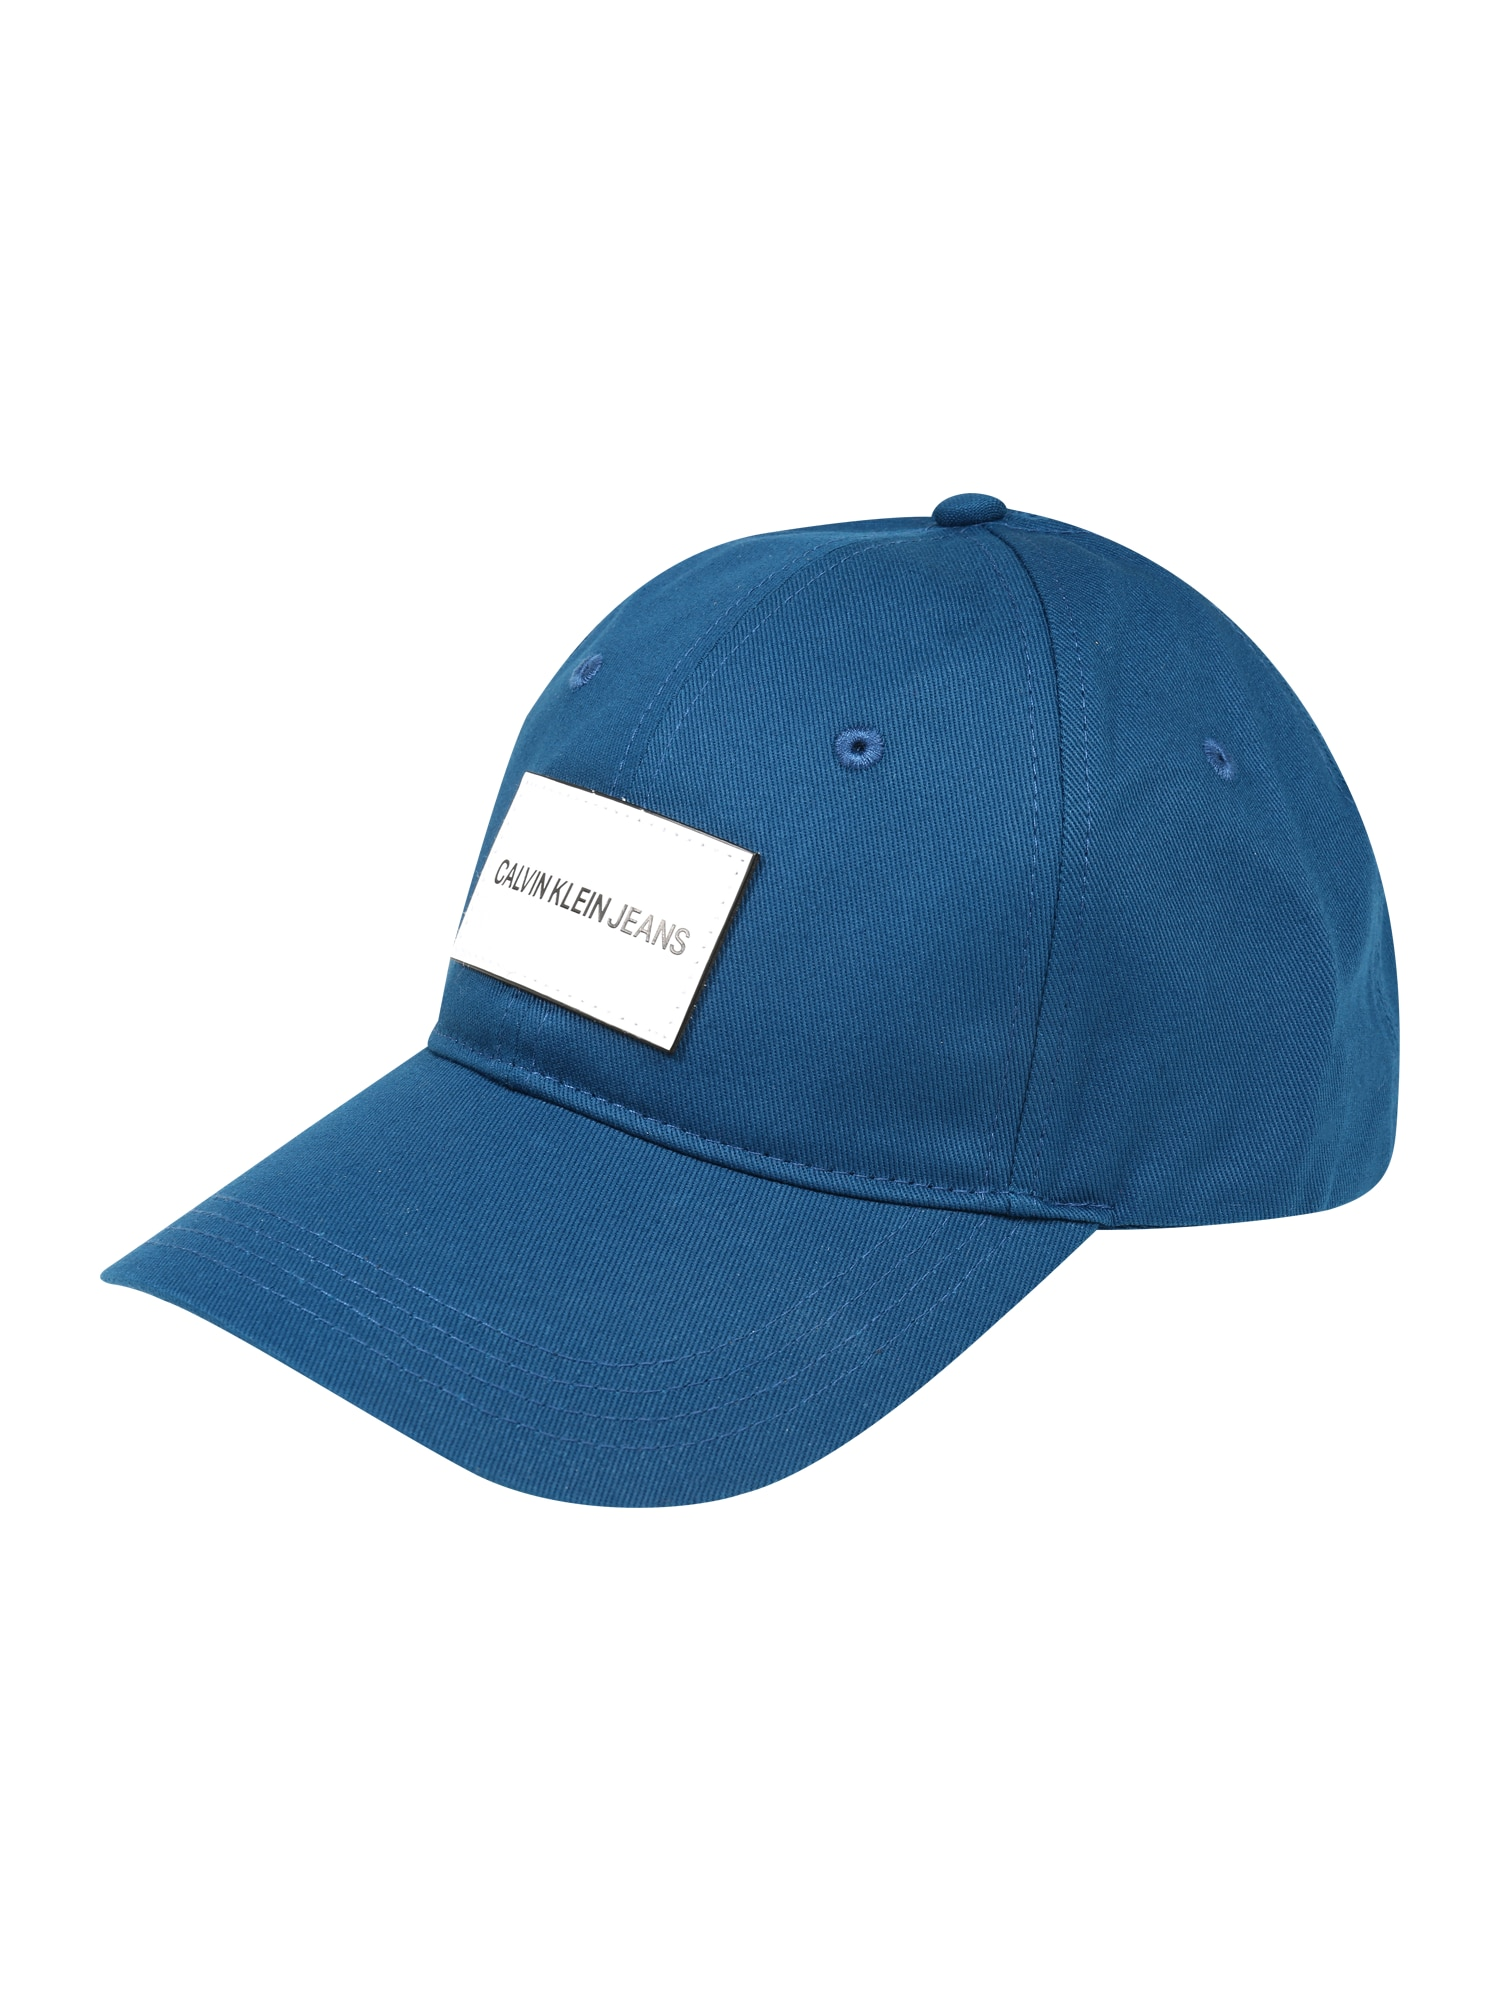 Calvin Klein Jeans Kepurė 'J INSTITUTIONAL CAP W LE PATCH' mėlyna